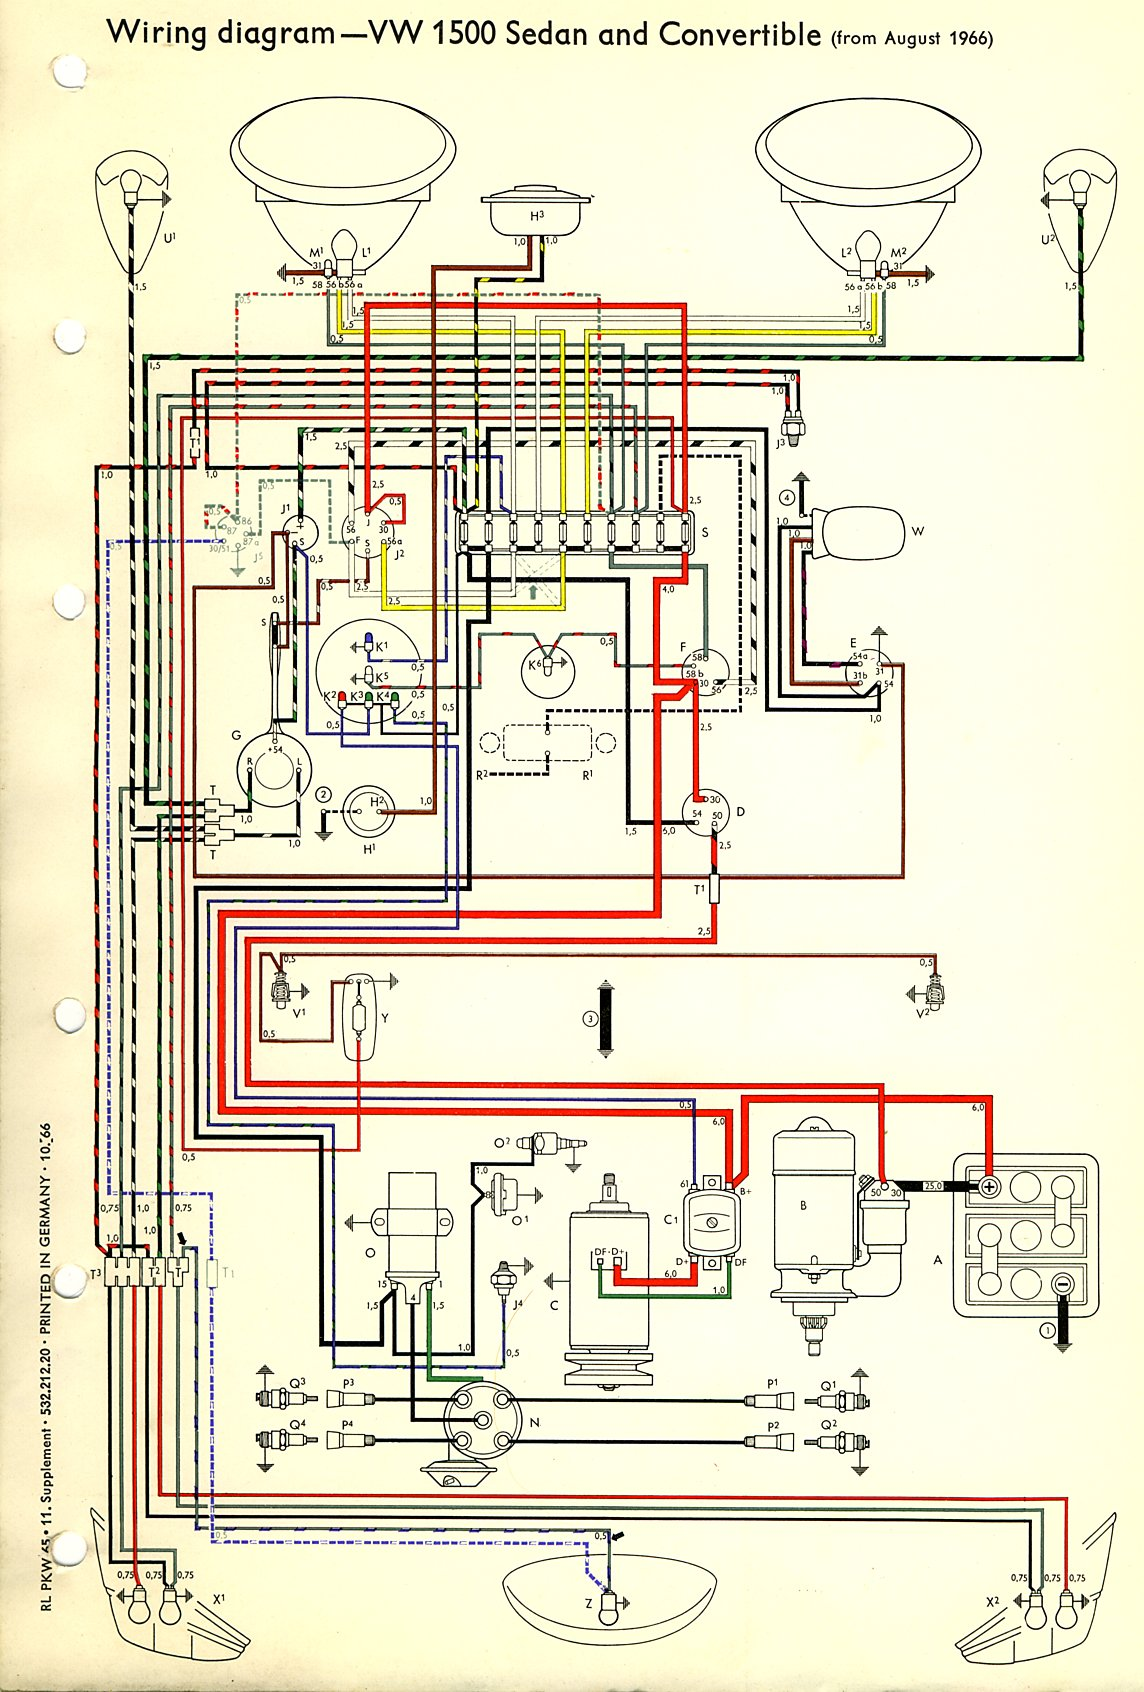 bug_67 1967 beetle wiring diagram thegoldenbug com 1973 vw wiring diagram at mifinder.co